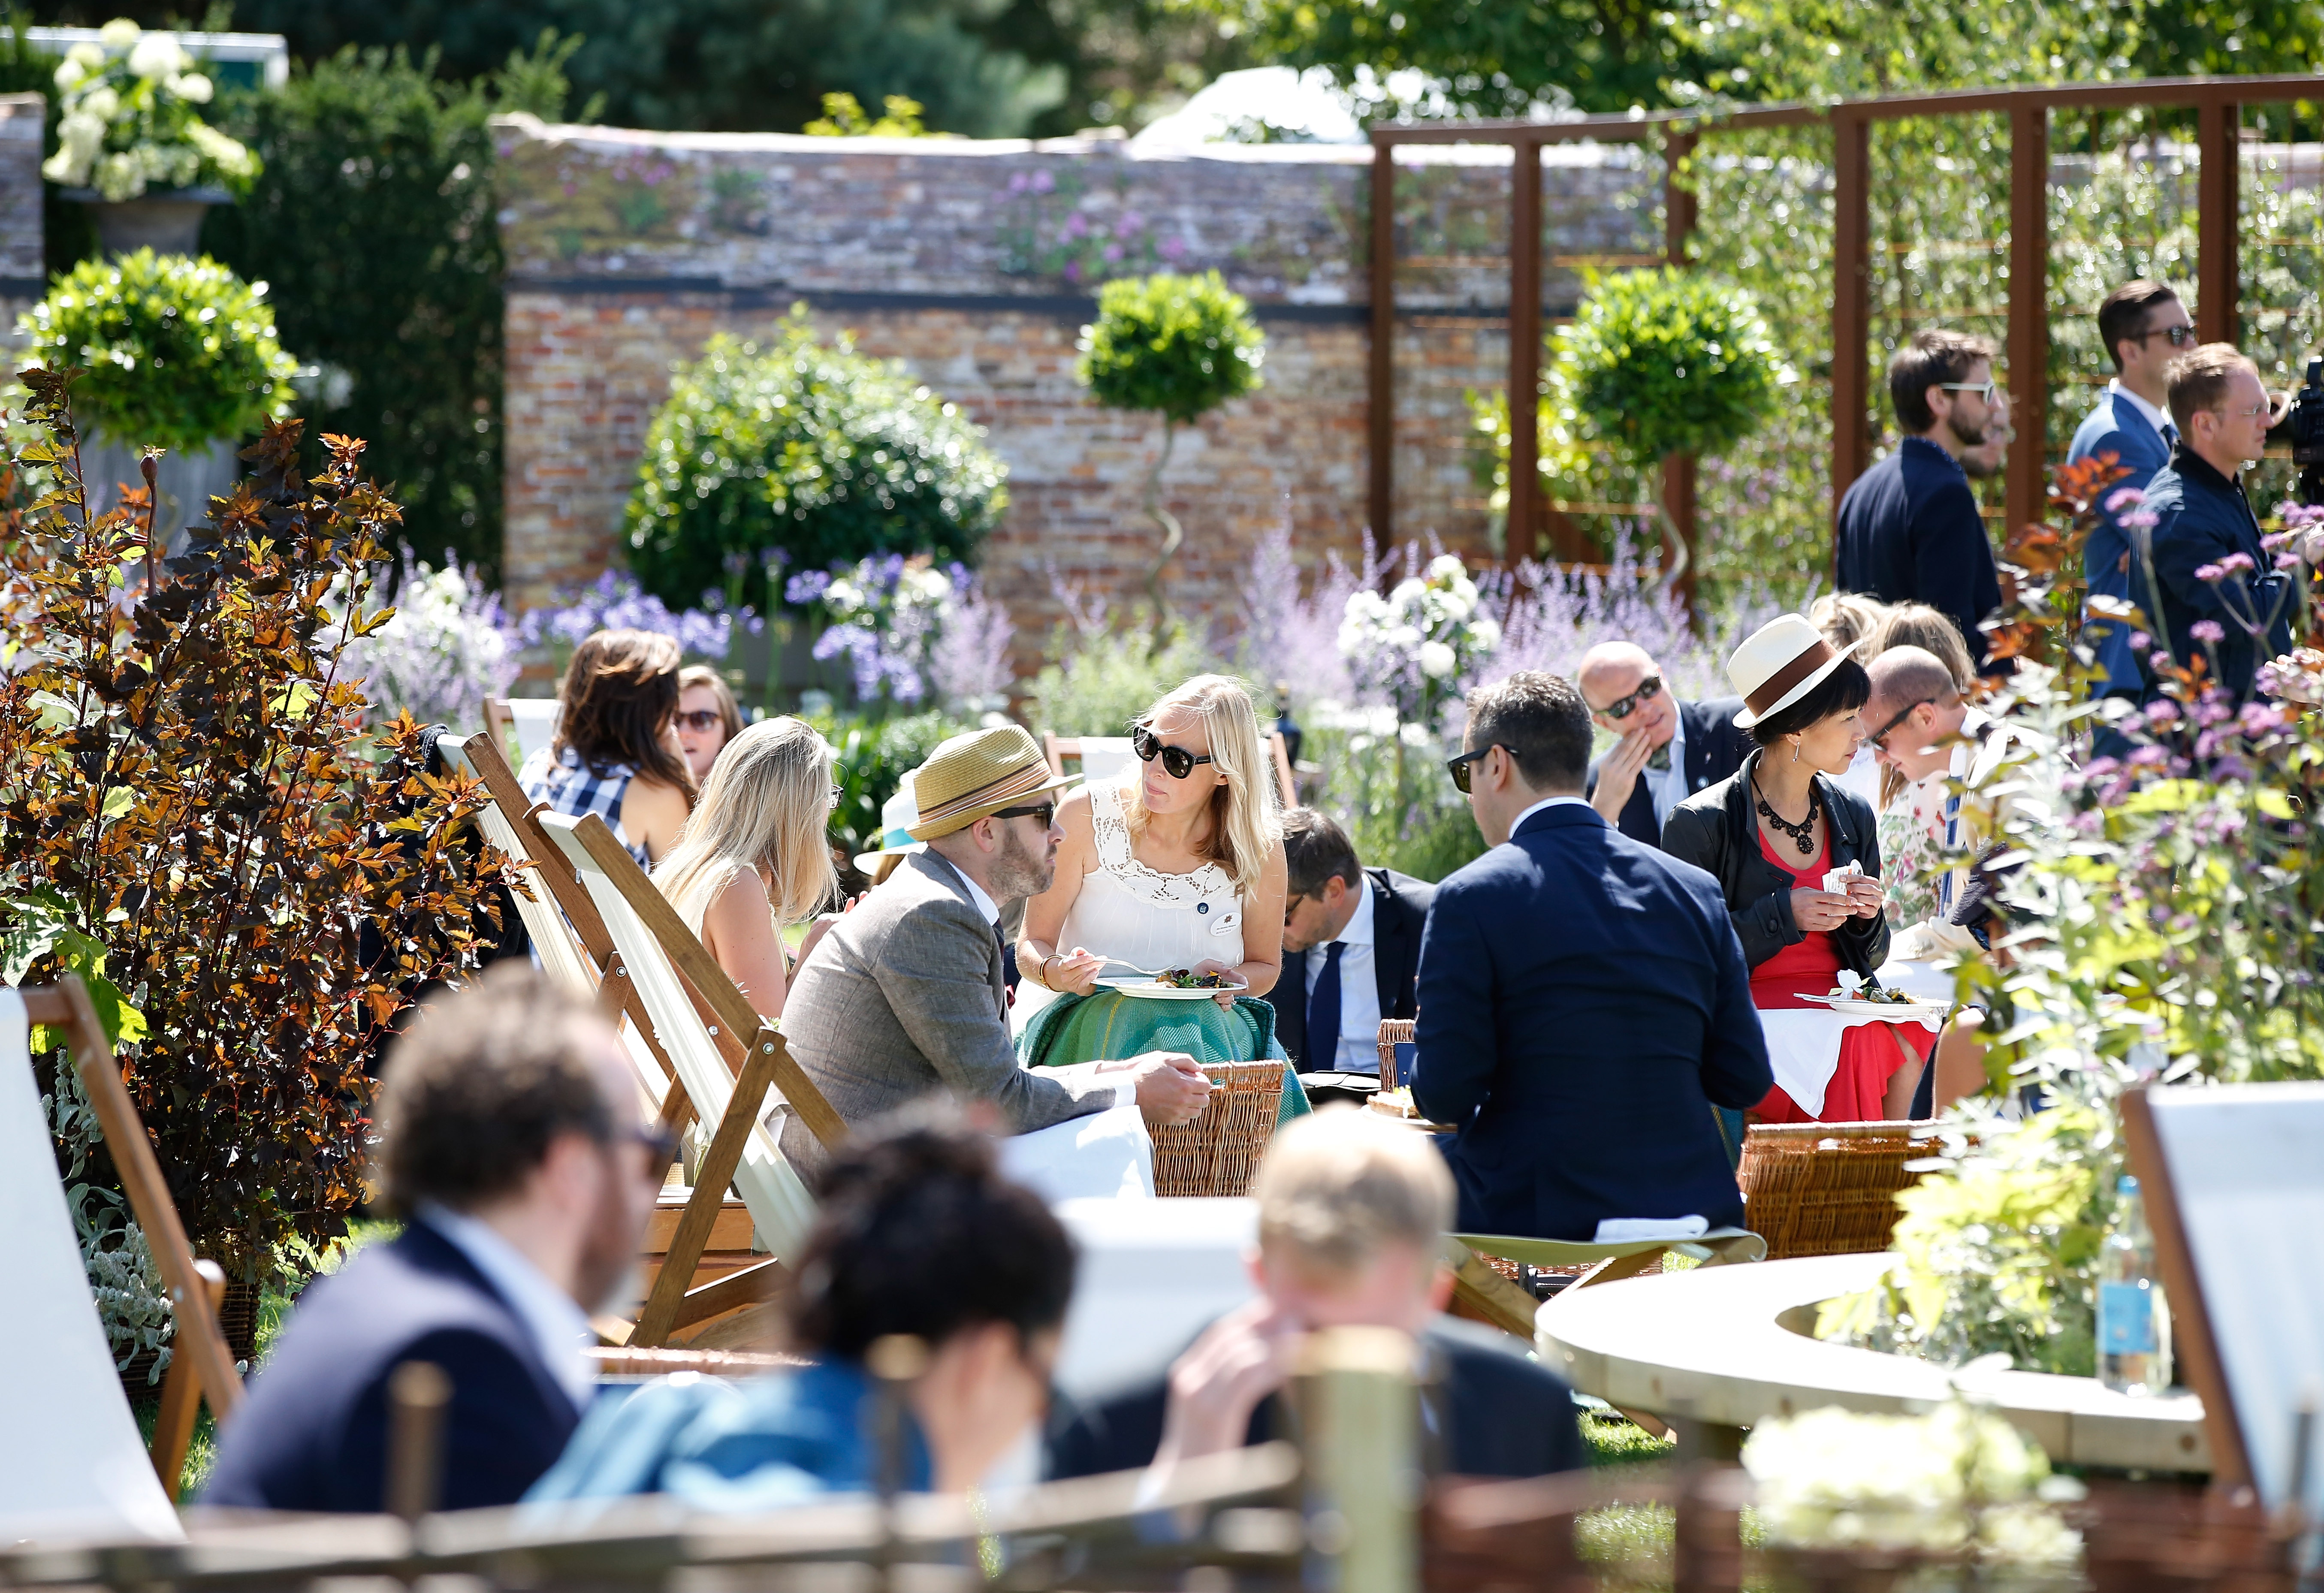 5 Things To Consider Before Planning A Backyard Wedding